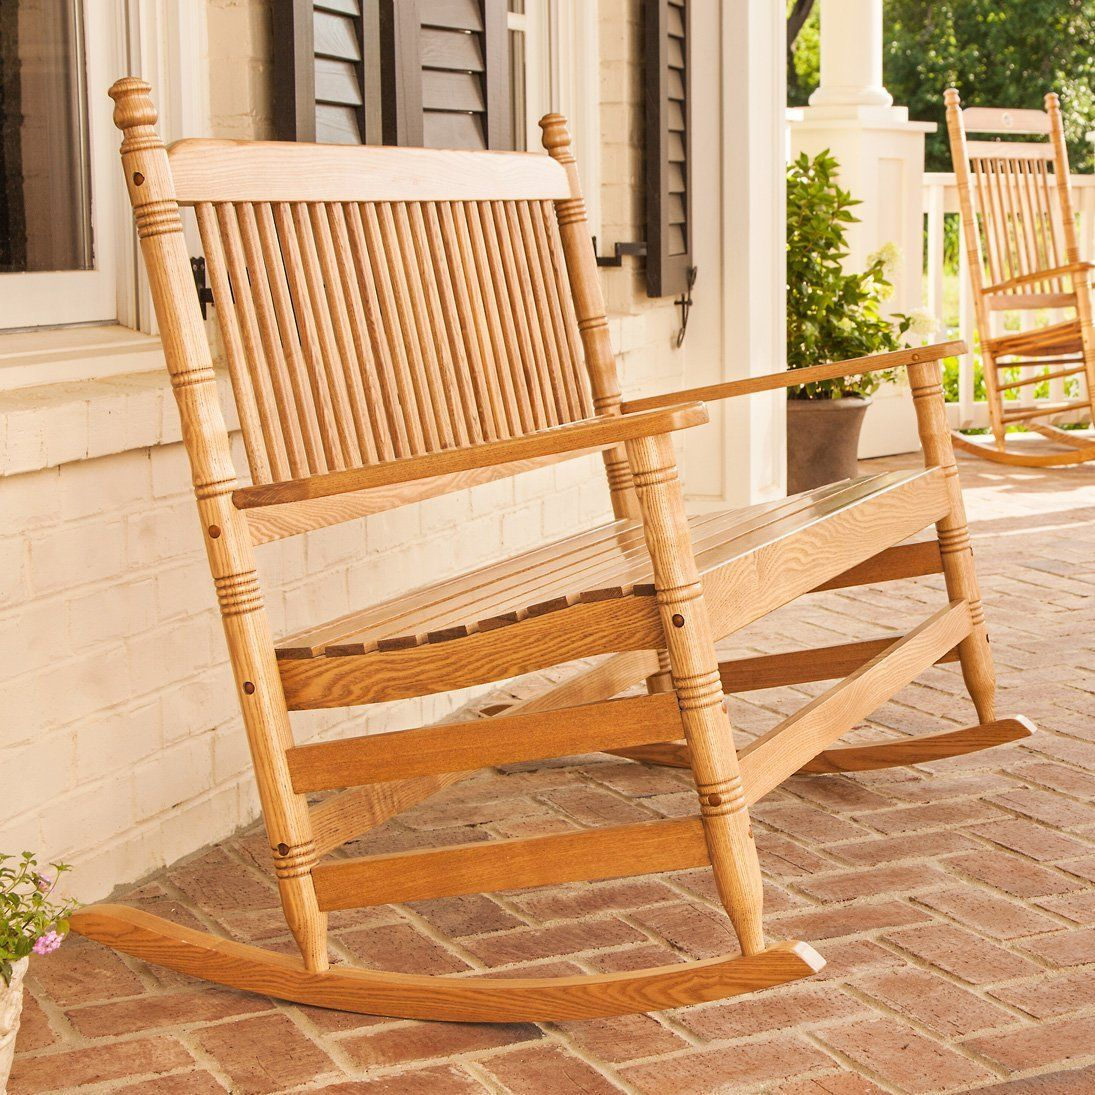 Miraculous 4 Oak Double Rocking Chair From Cracker Barrel I Need Onthecornerstone Fun Painted Chair Ideas Images Onthecornerstoneorg